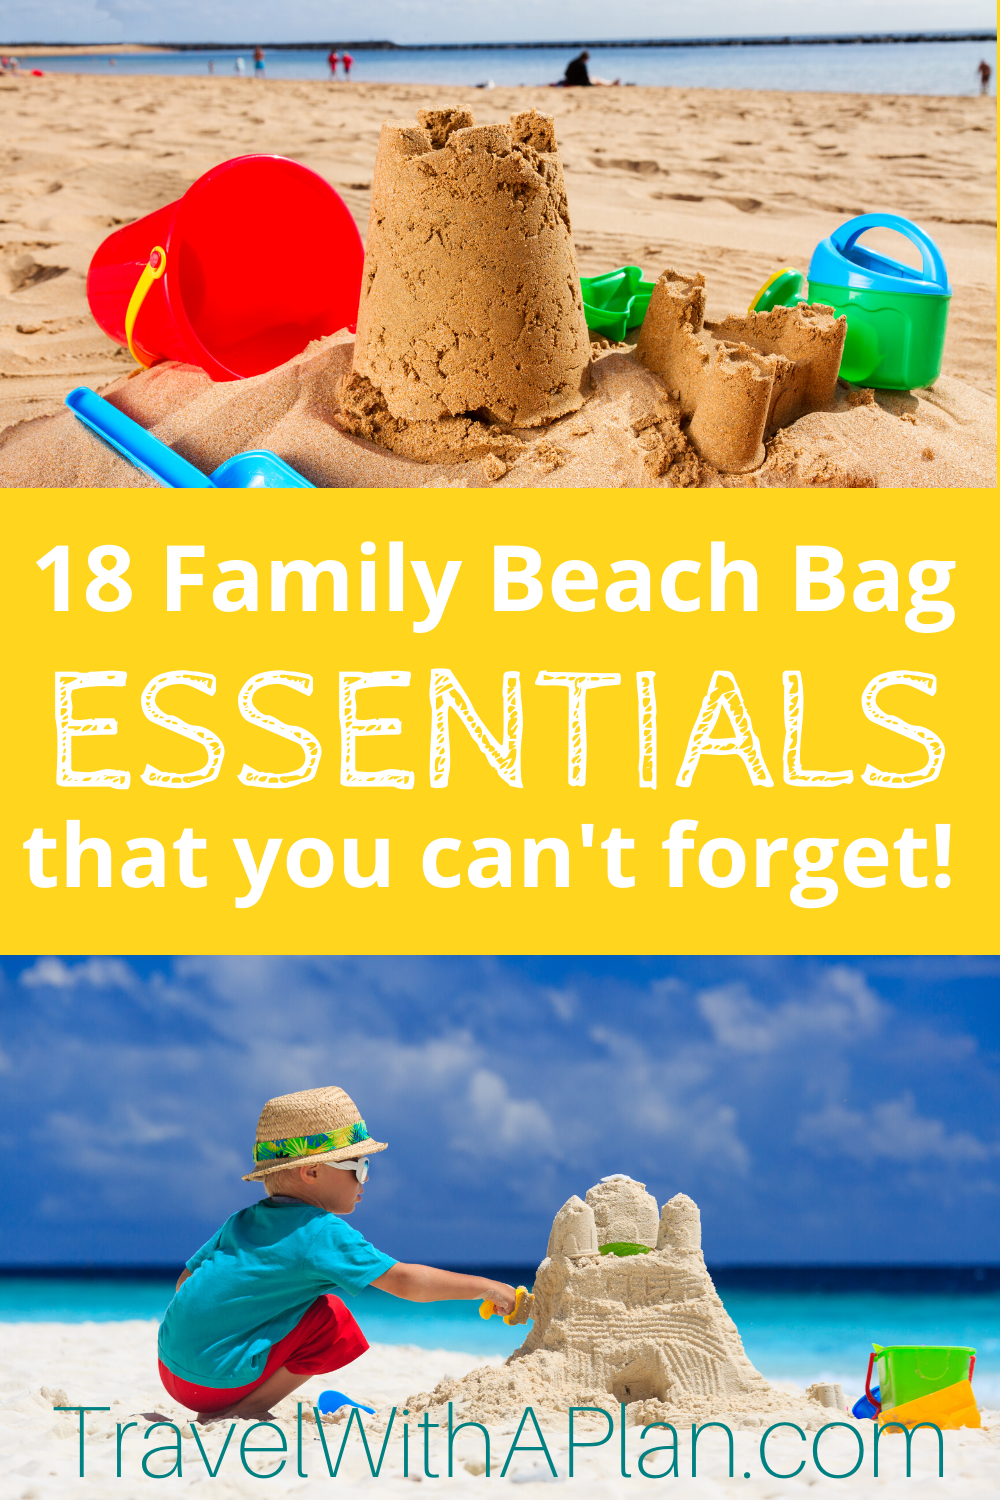 These 18 things to bring to the beach are absolute essentials for a trip to the beach or pool!  We never travel to the beach without a beach bag complete with the following items!  Get all of our secrets here!  #thingstobringtothebeach #beachbagessentials #thingstobringtothebeachforkids #familybeachbagessentials #whattopackforthebeach #familybeachvacation